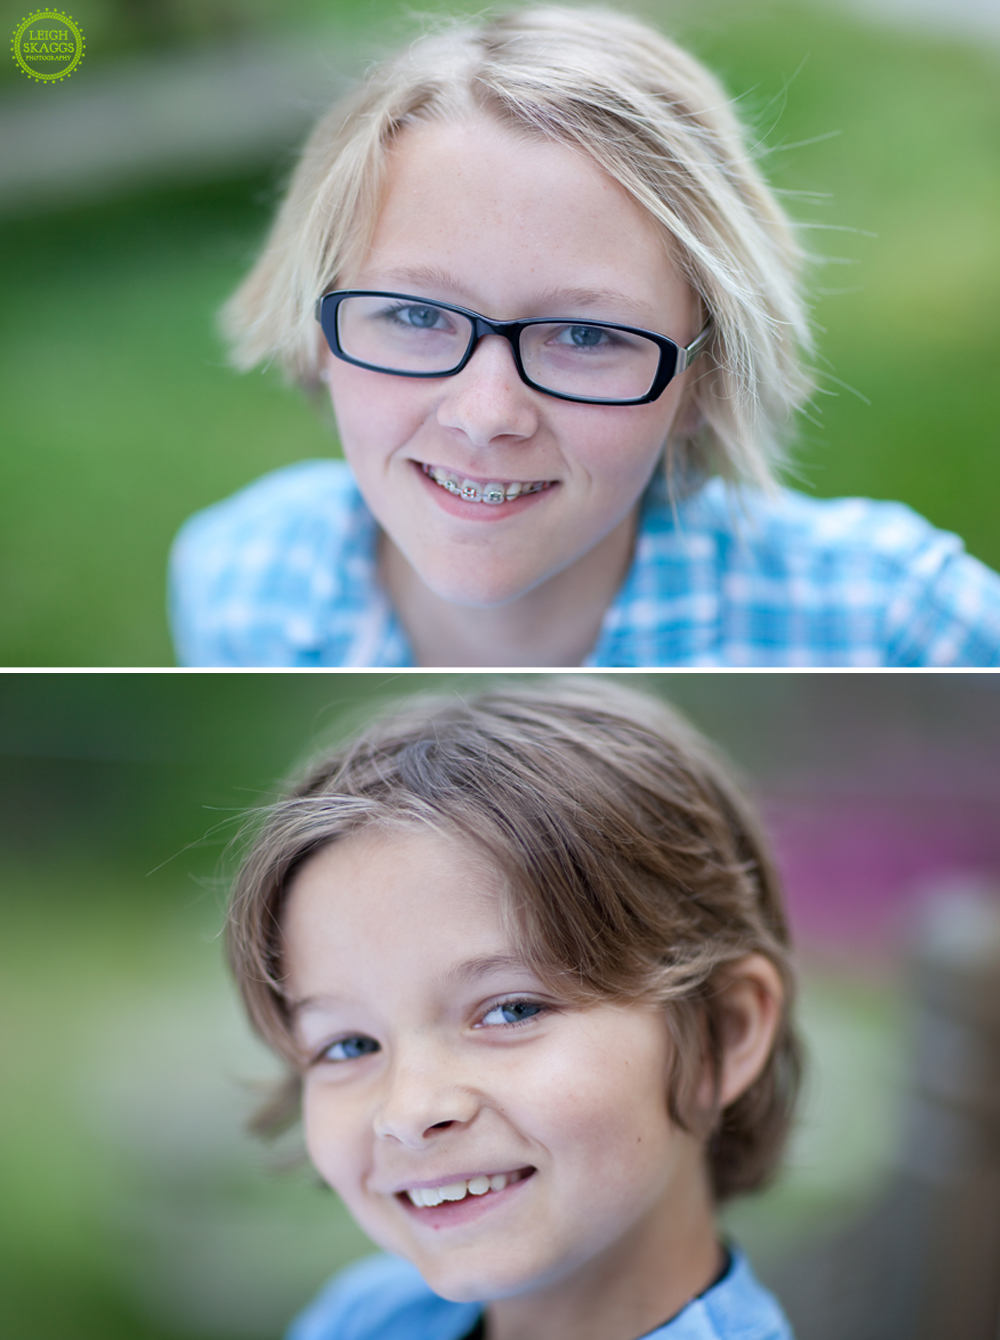 Norfolk Childrens Photographer ~Morgan & Truman are on Spring Break!~